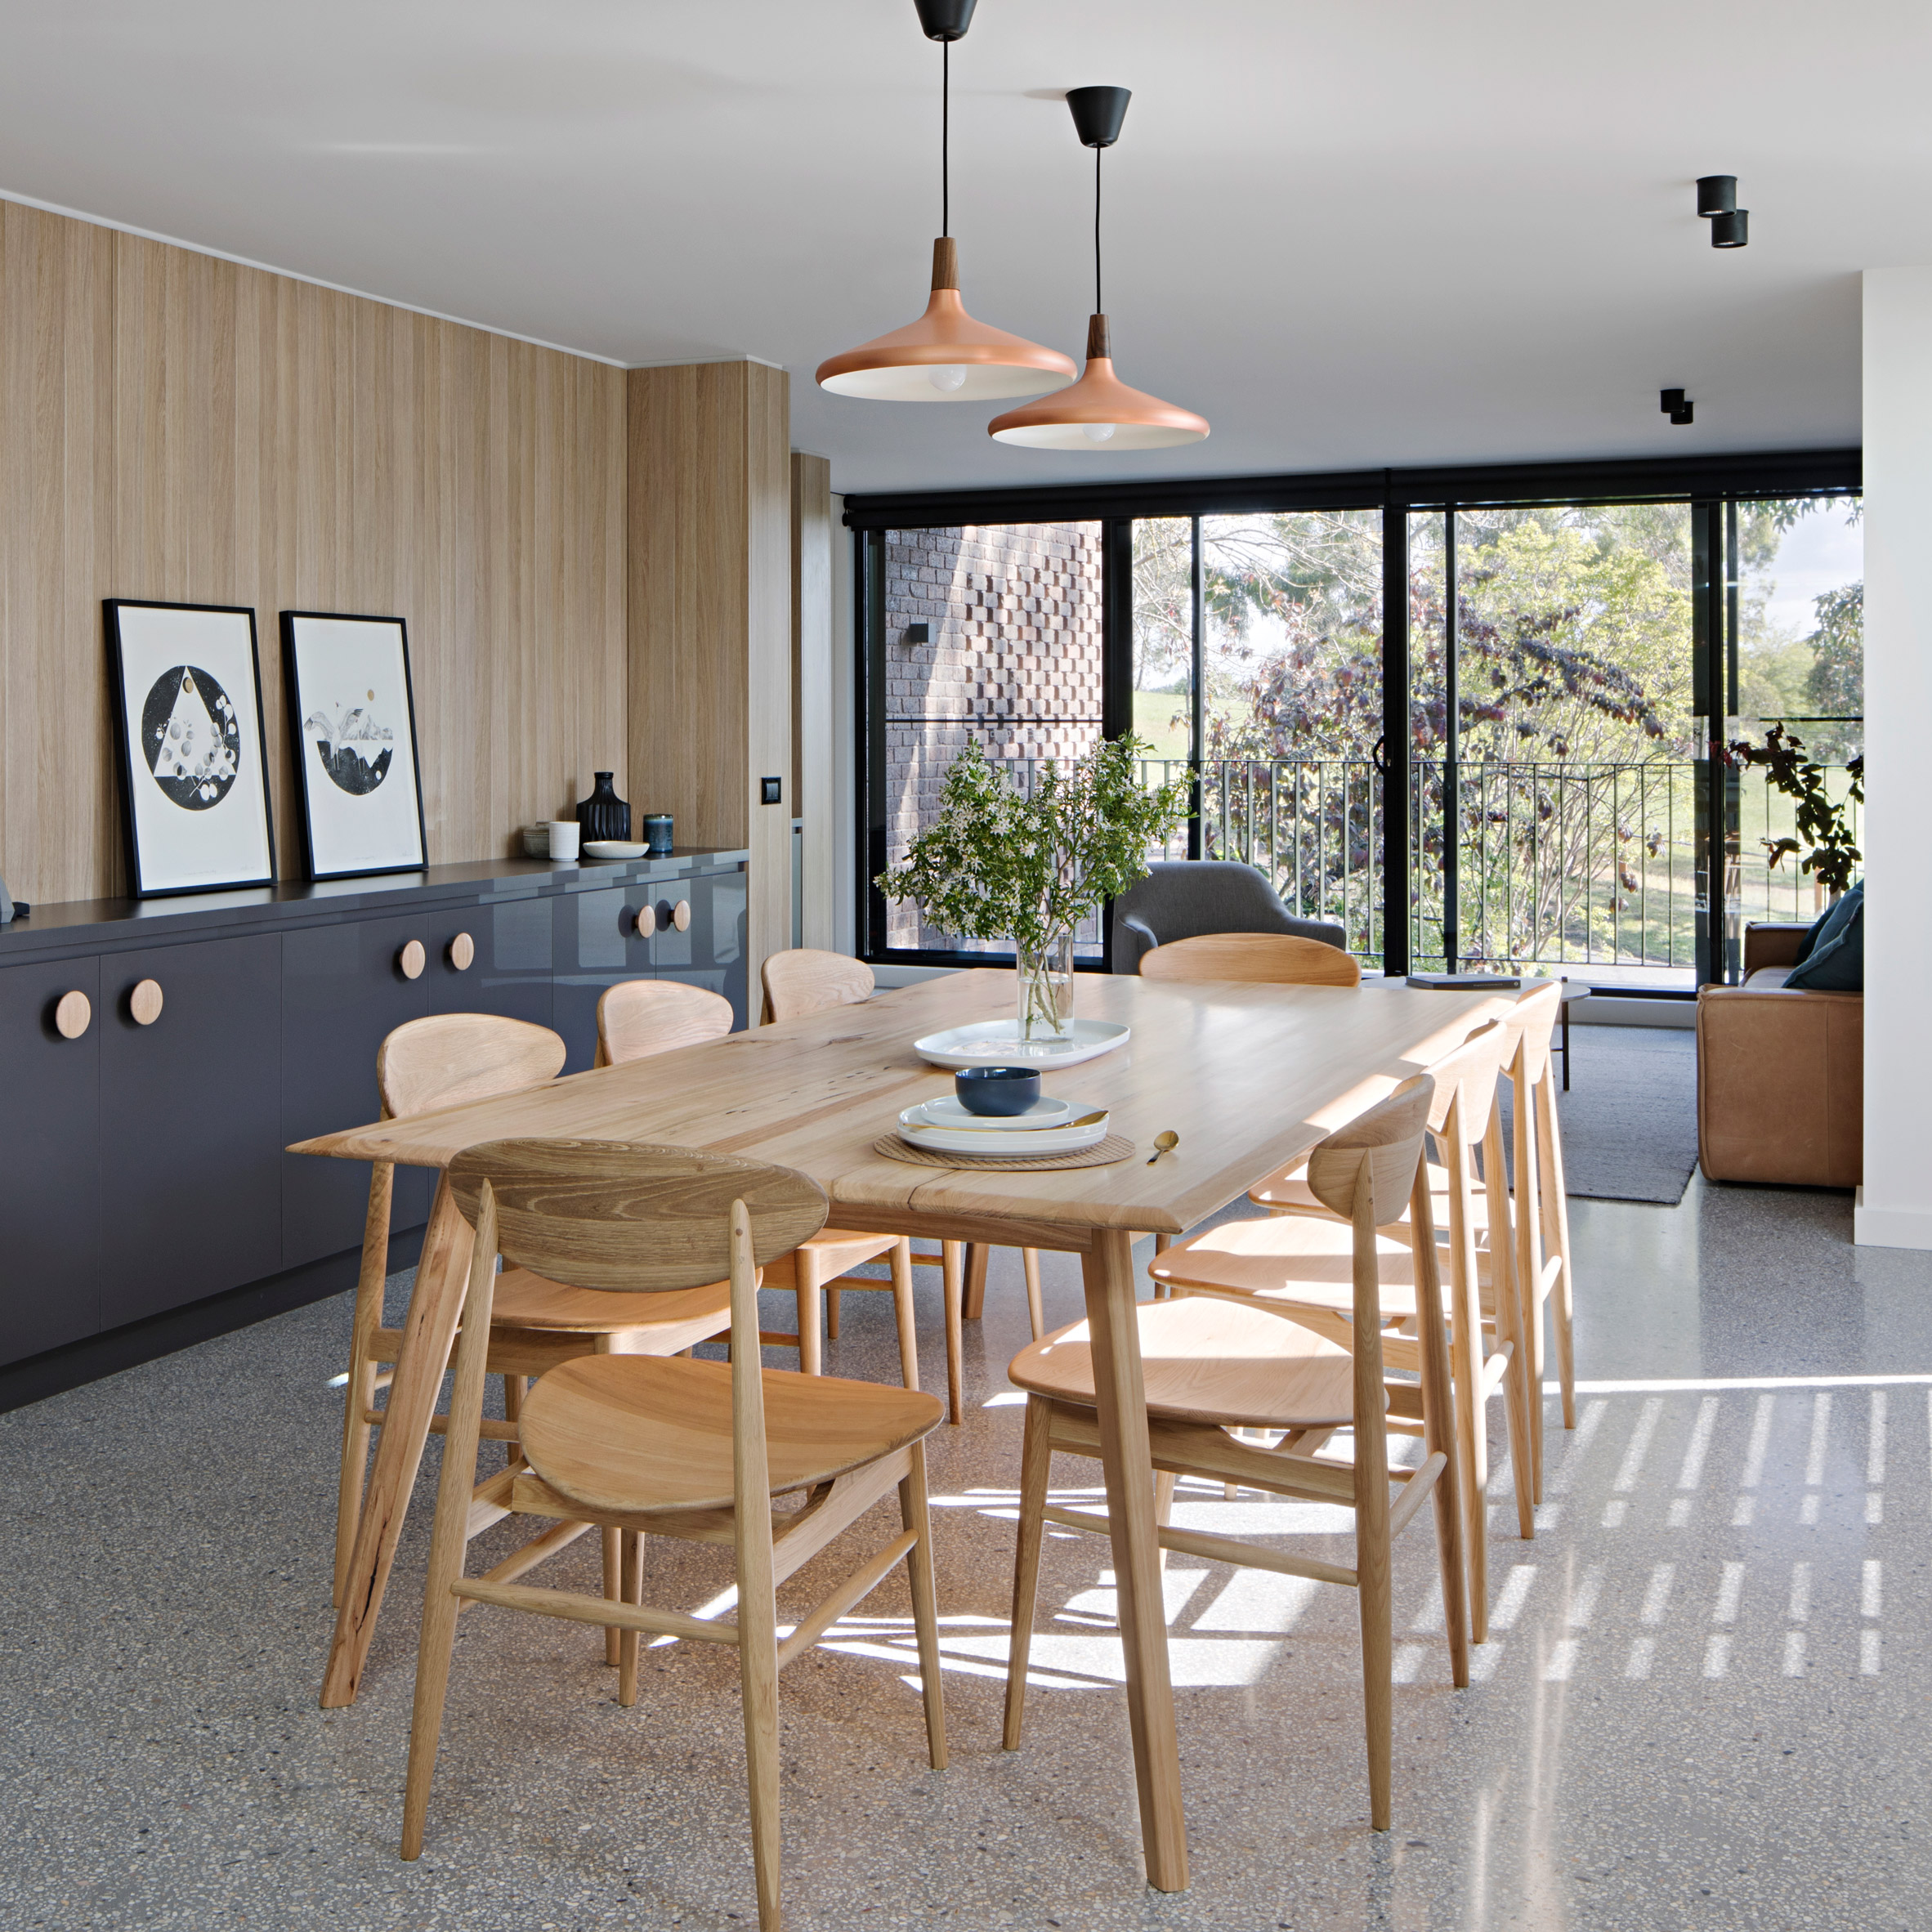 House design australia - Inbetween Architecture Transforms Terribly Dated 1970s Melbourne House To Open Up Lake Views